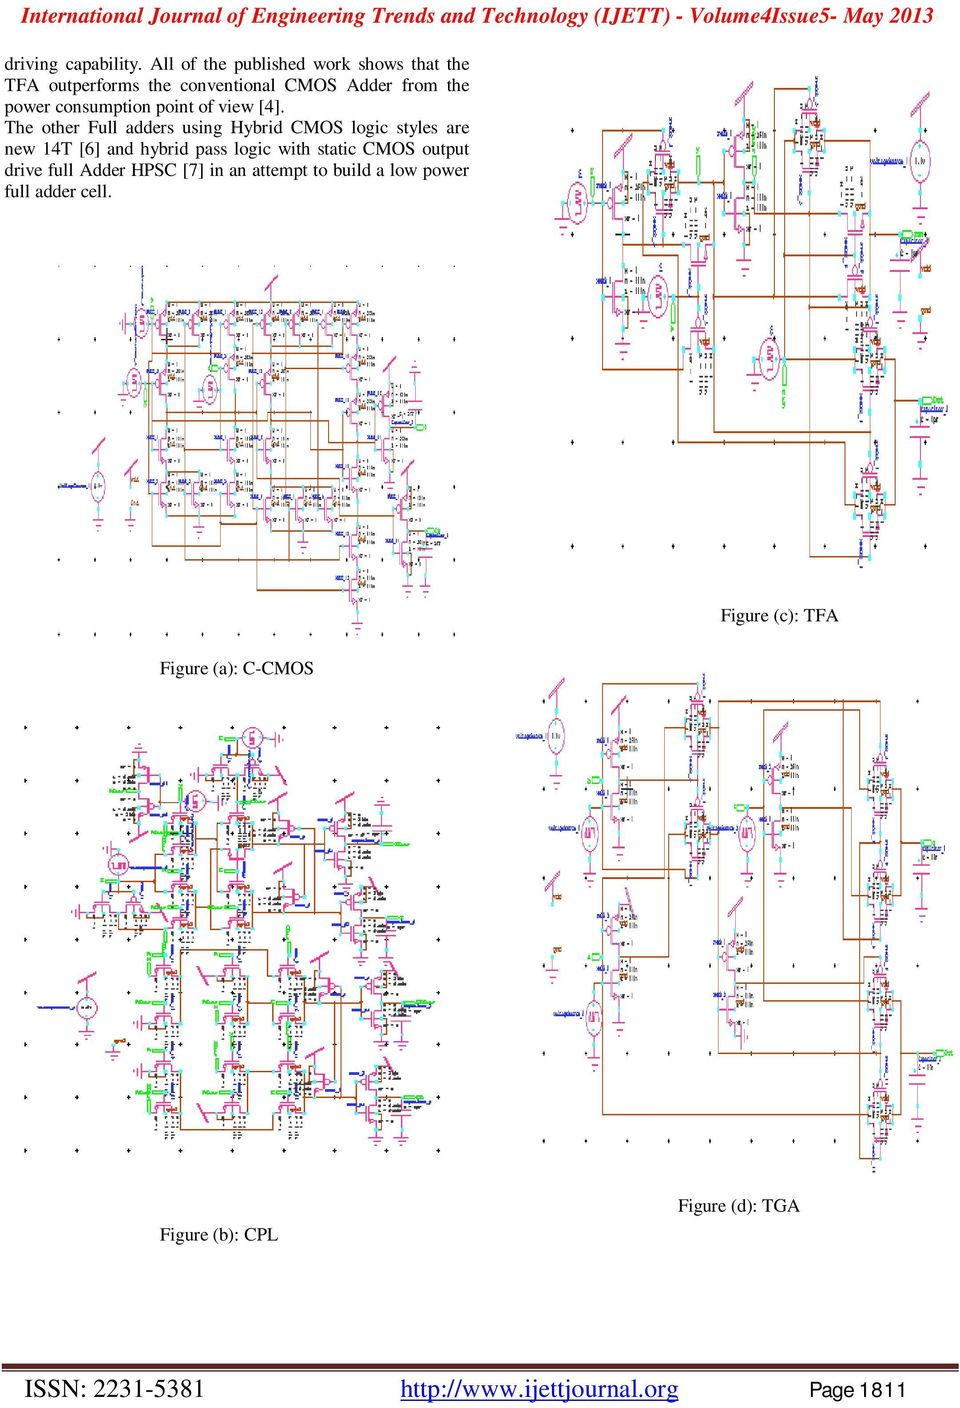 Design Of Low Power One Bit Hybrid Cmos Full Adder Cells Pdf Thus A 1bit Can Be Realized By The Following Circuit Point View 4